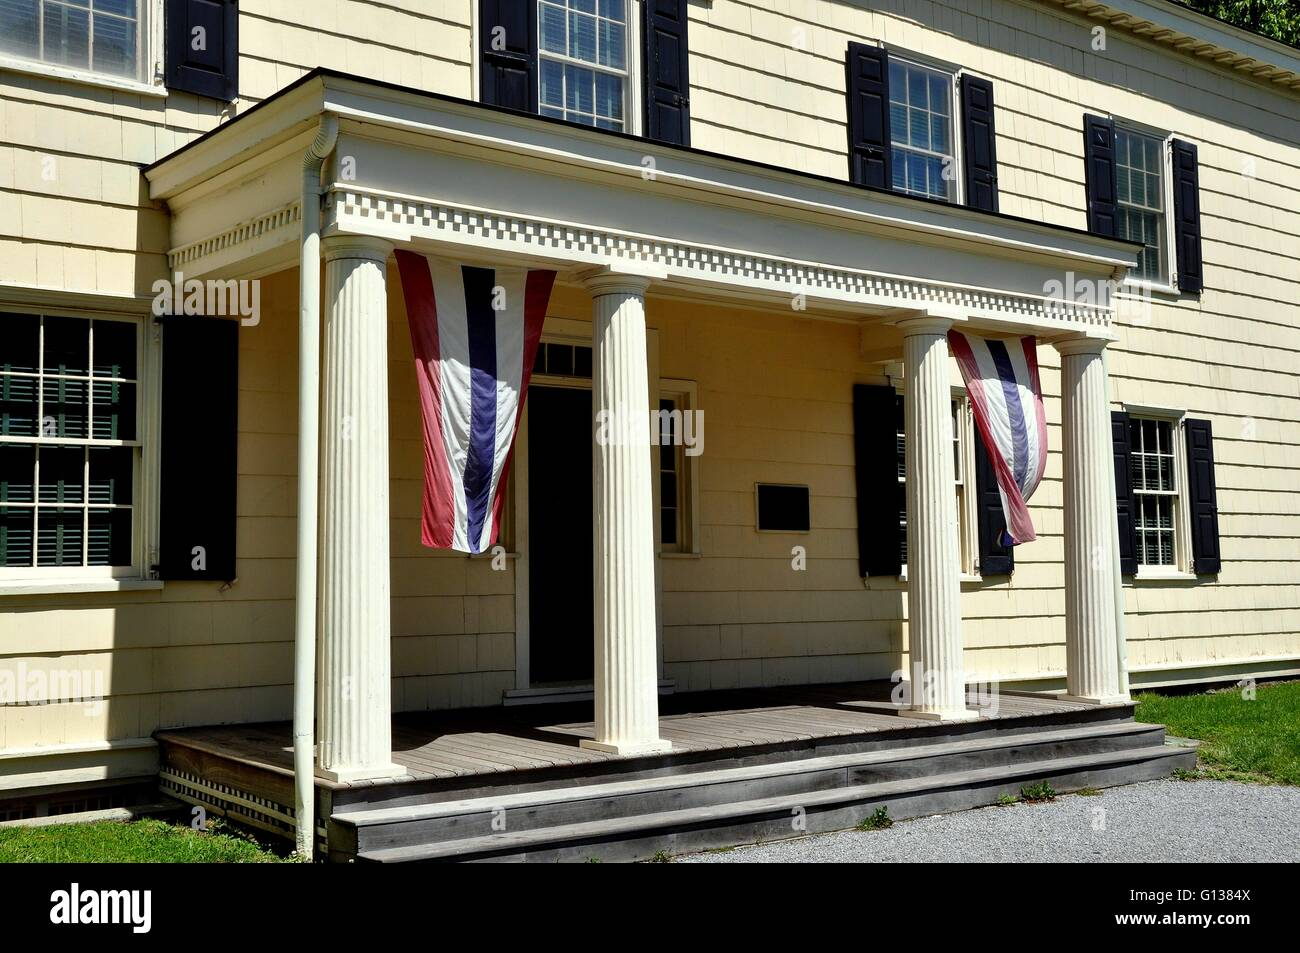 Entrance With Portico Columns : New york city entrance portico with four columns at